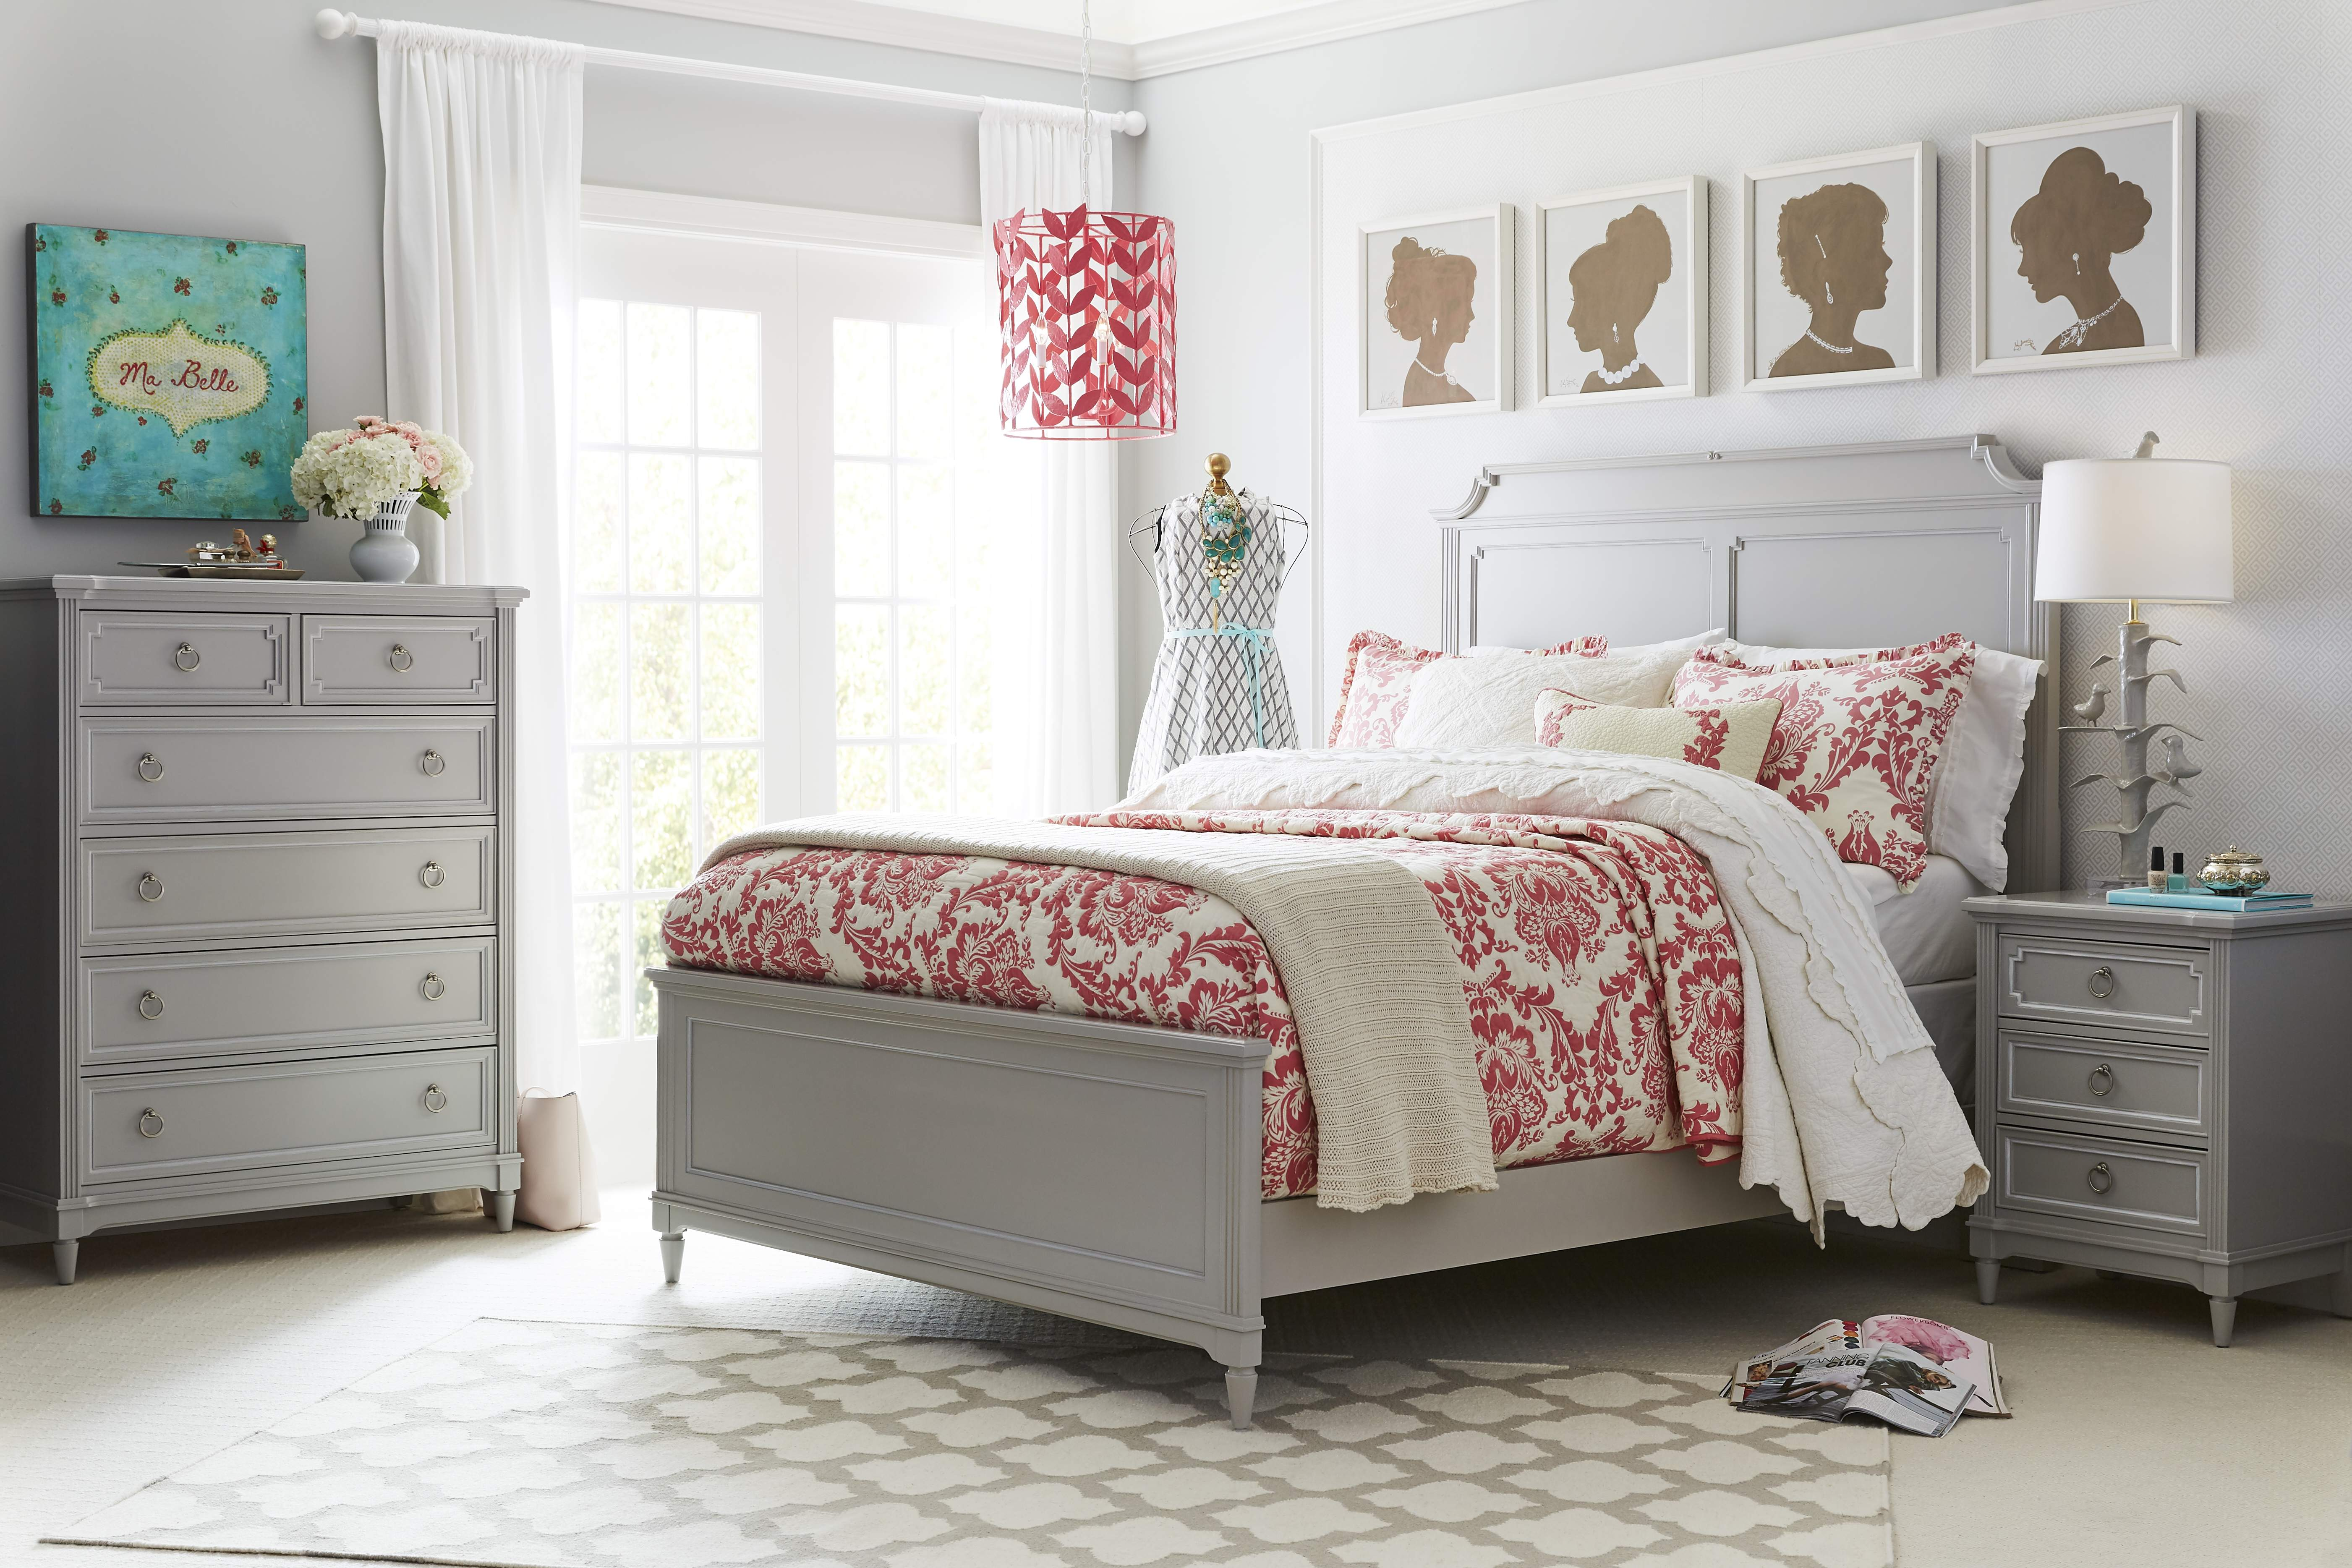 Fine Bedroom Furniture Manufacturers Fine Bedroom Furniture Manufacturers Fine Bedroom